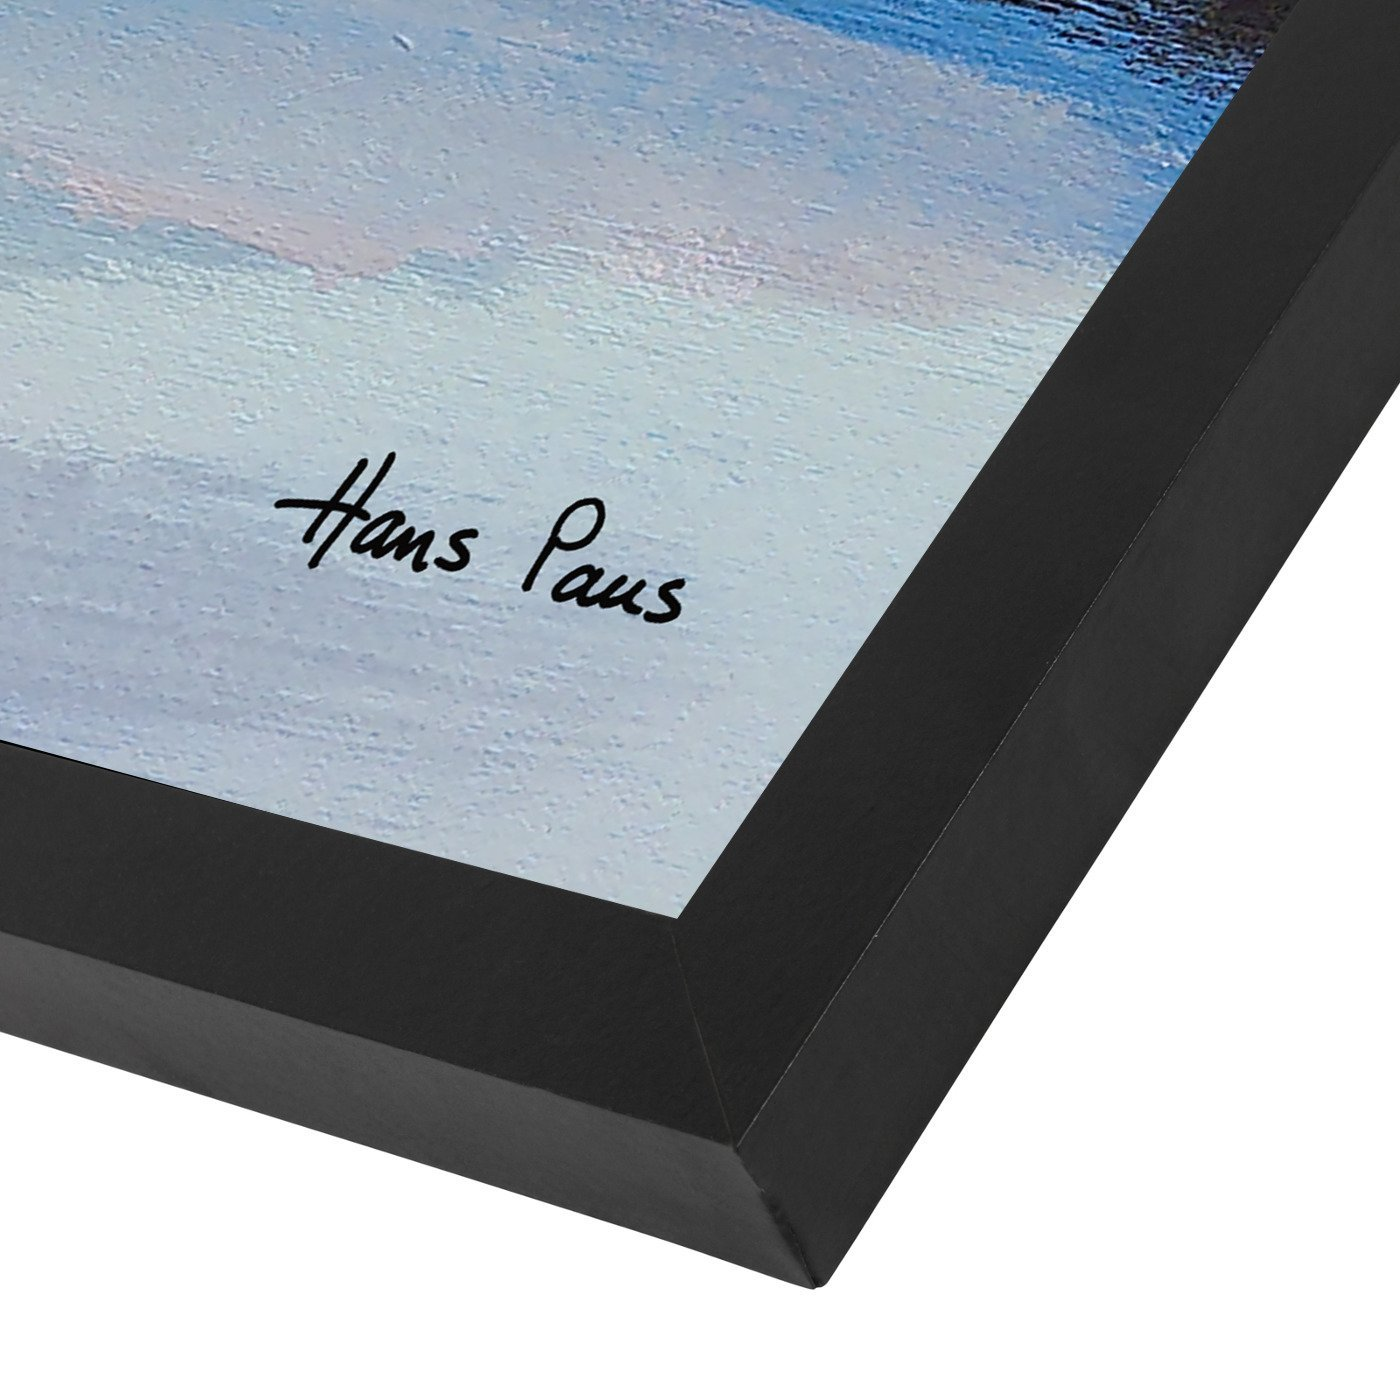 Abstract Landscape 2 By Hans Paus - Black Framed Print - Wall Art - Americanflat